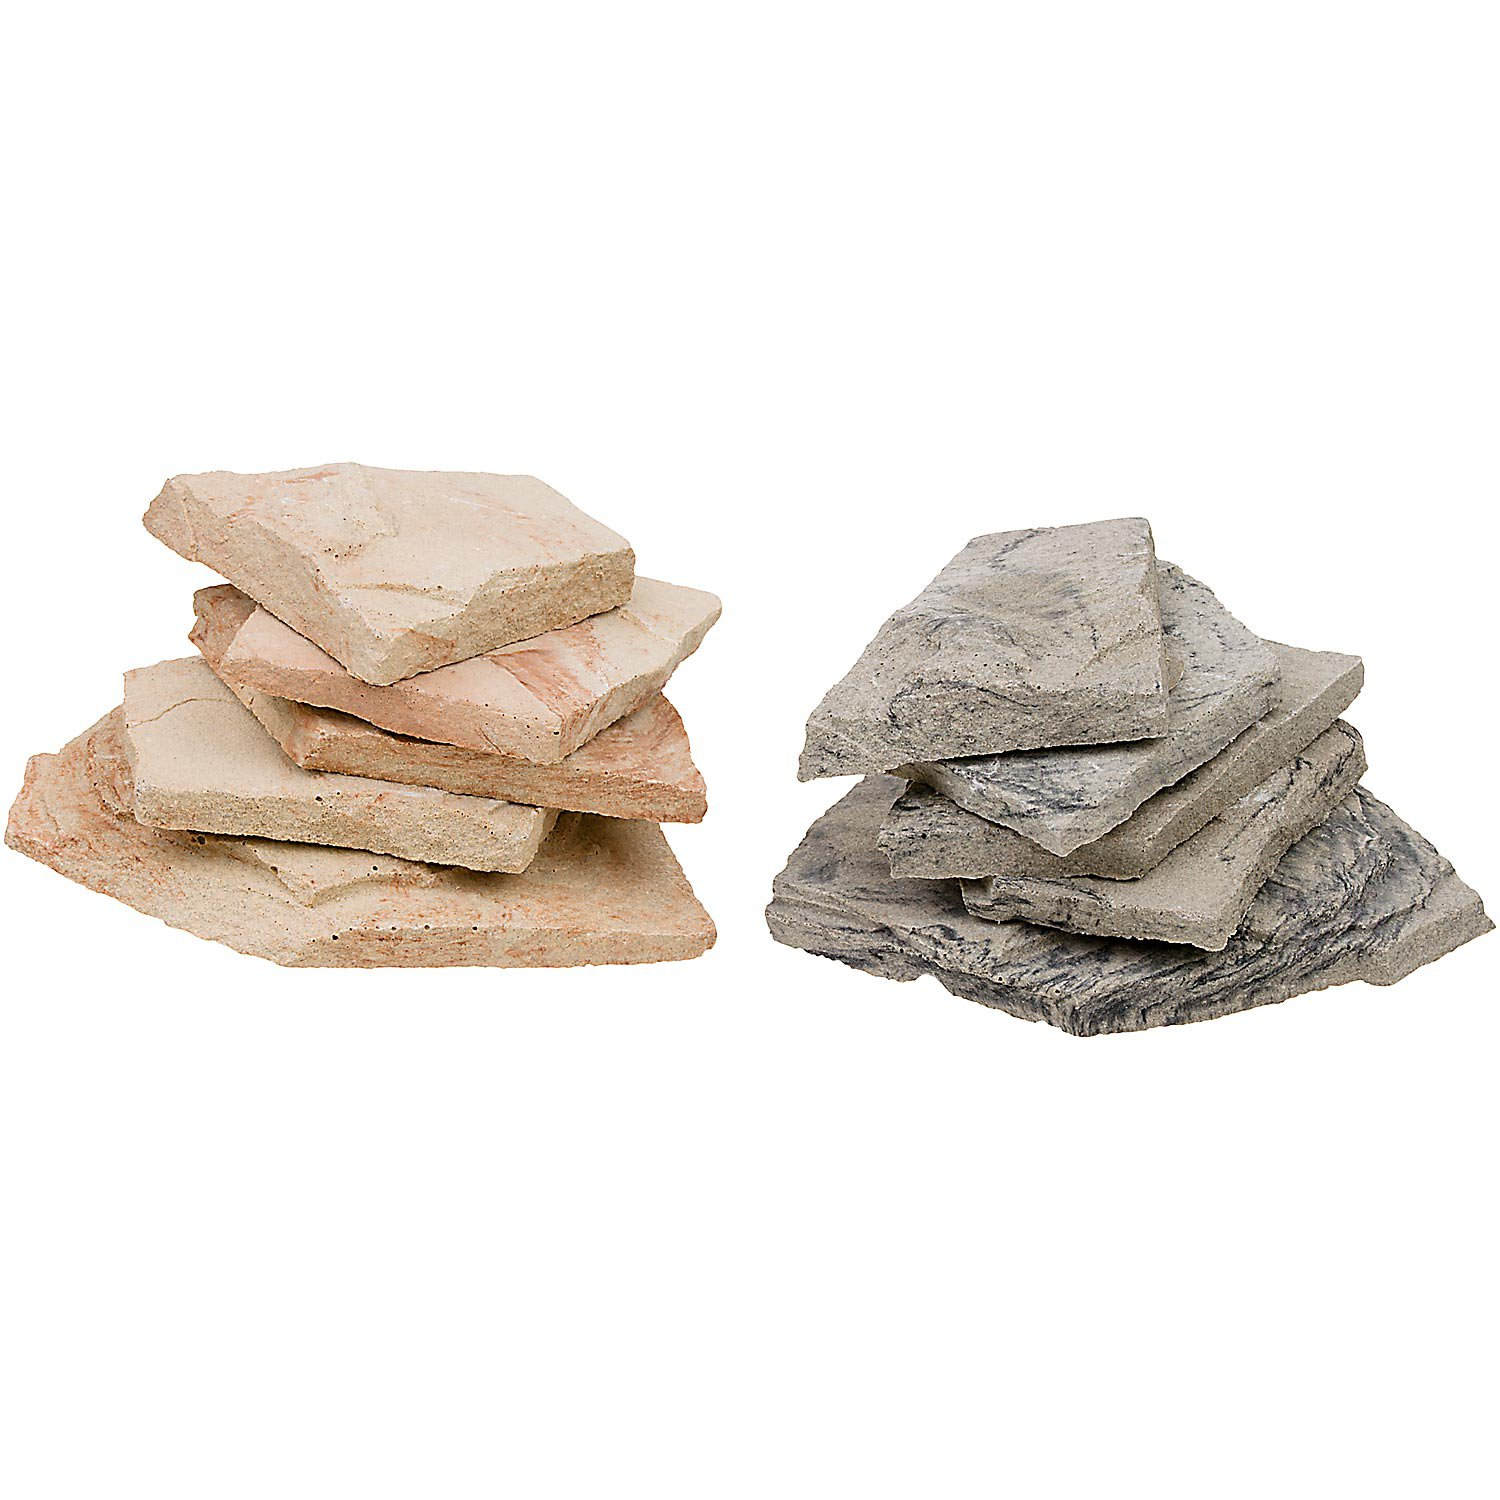 Conceptual Creations Gray & Tan Stack of Stones